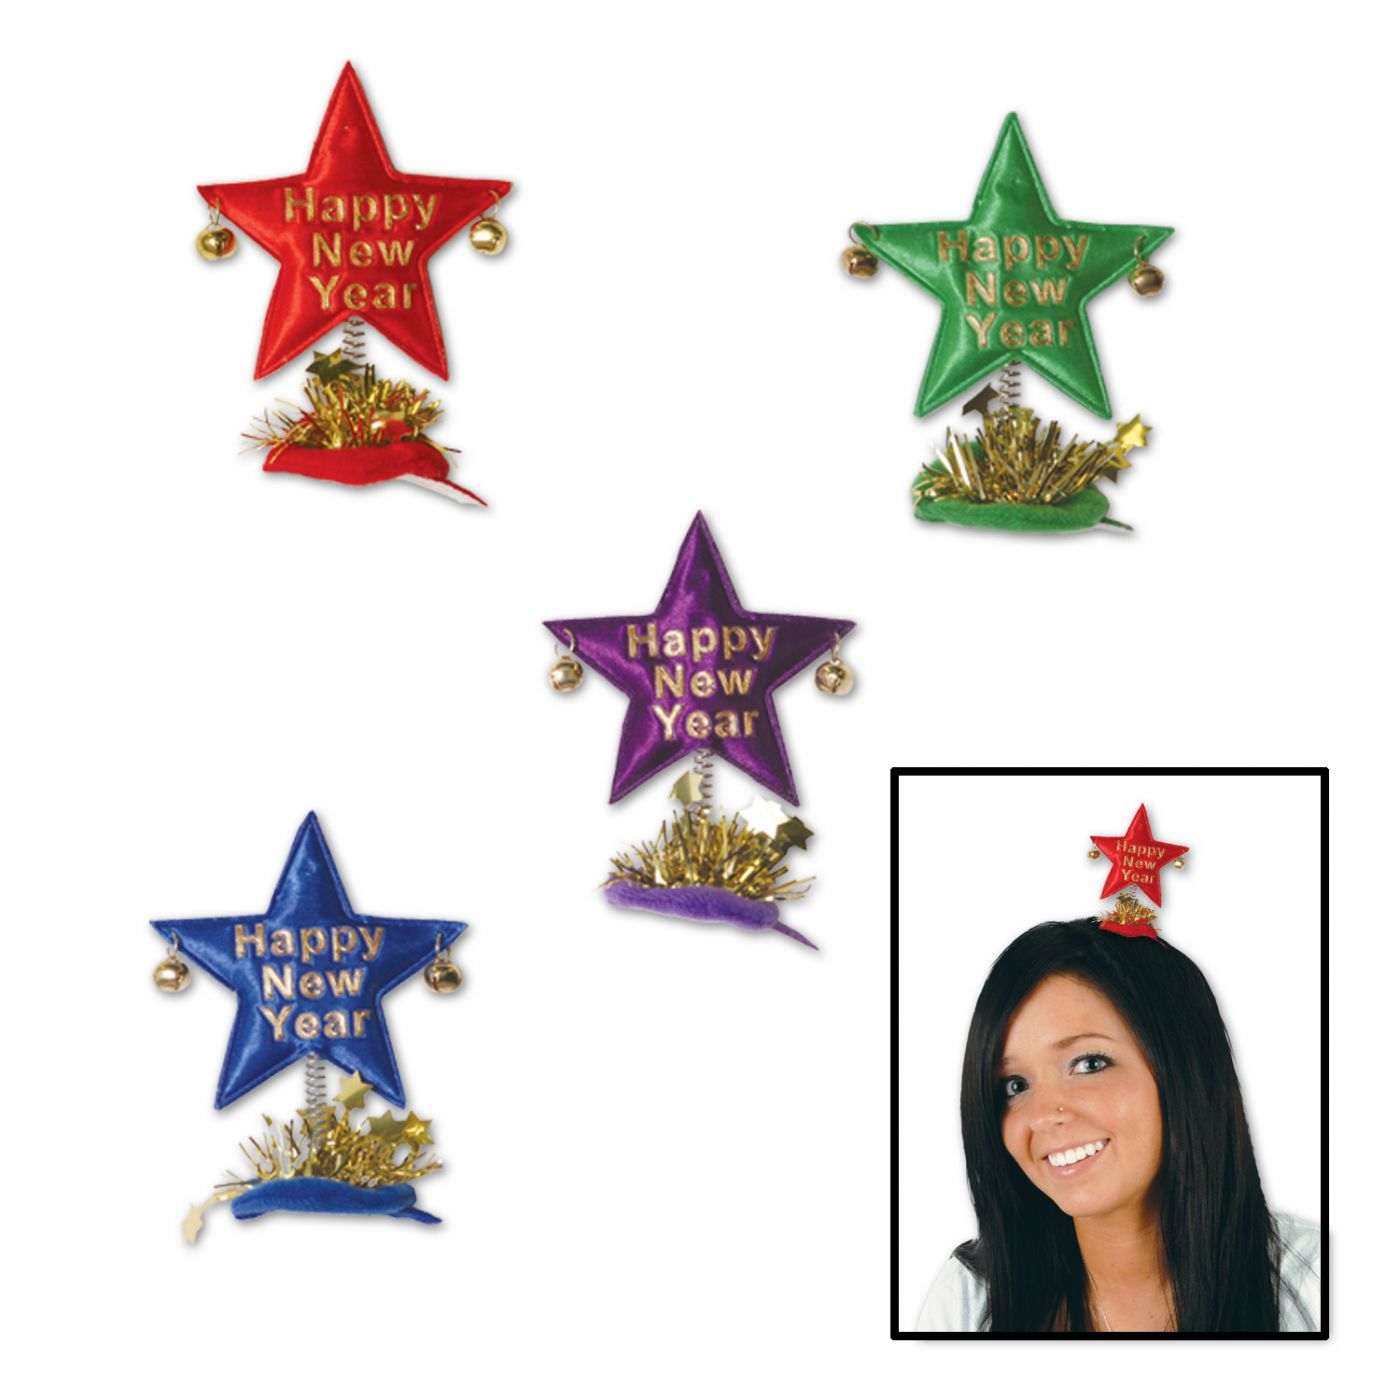 Happy New Year Star Hair Clips image